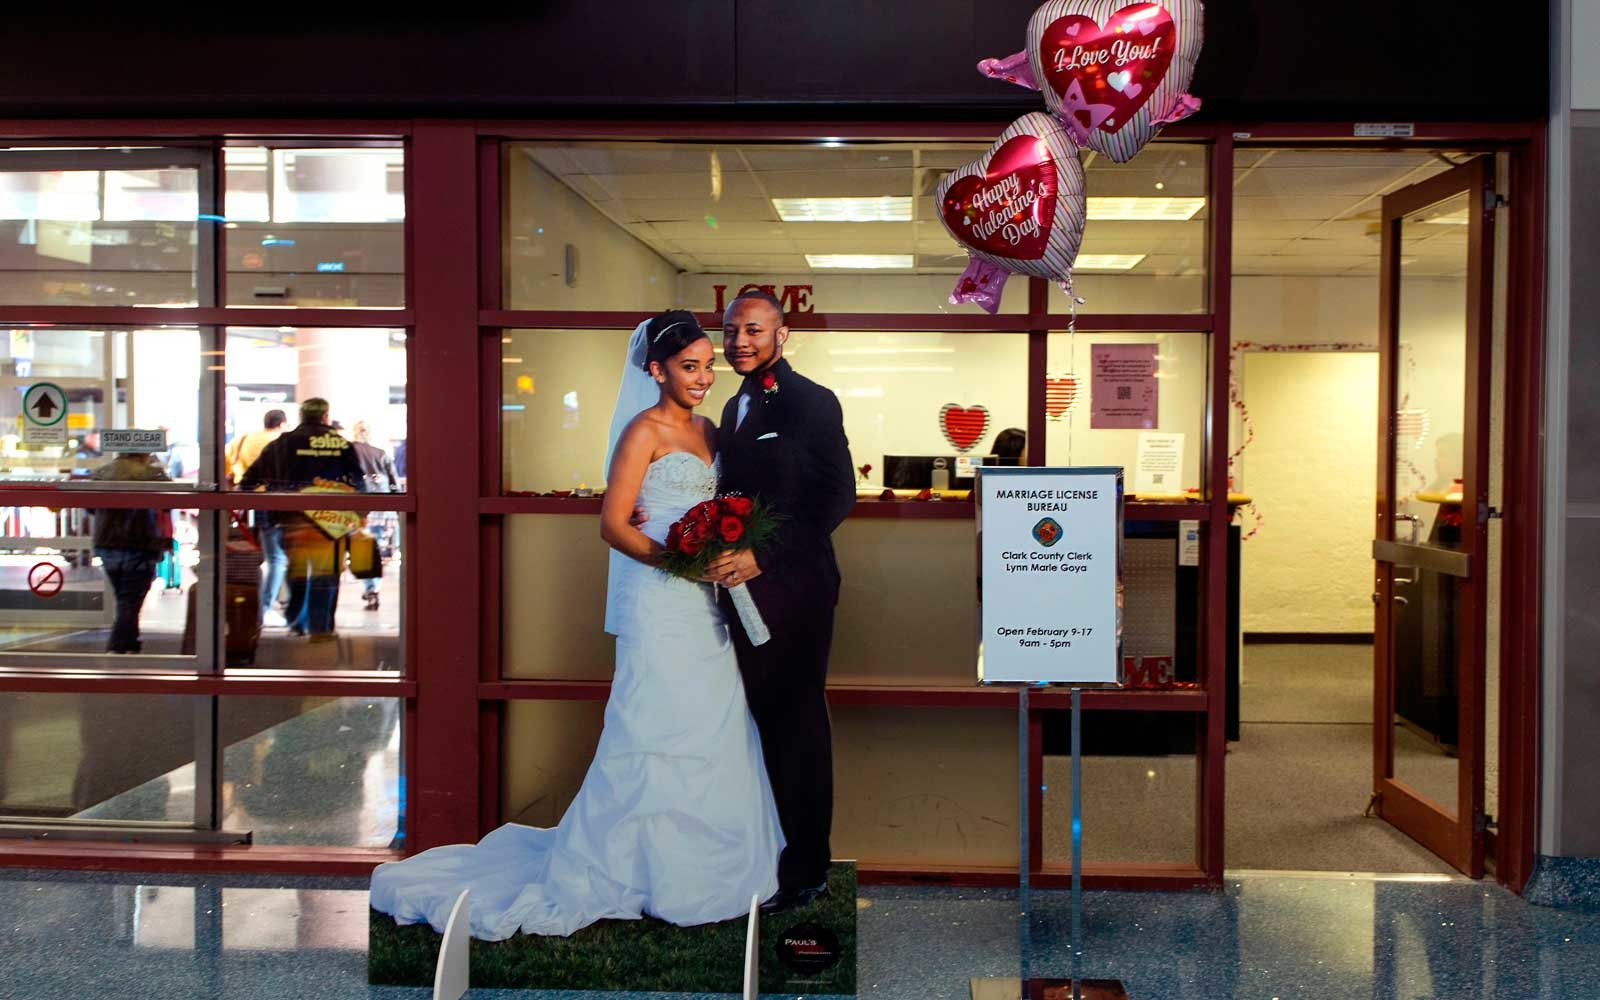 The Clark County Clerk's Office operates a temporary pop-up marriage license office at McCarran International Airport in Las Vegas